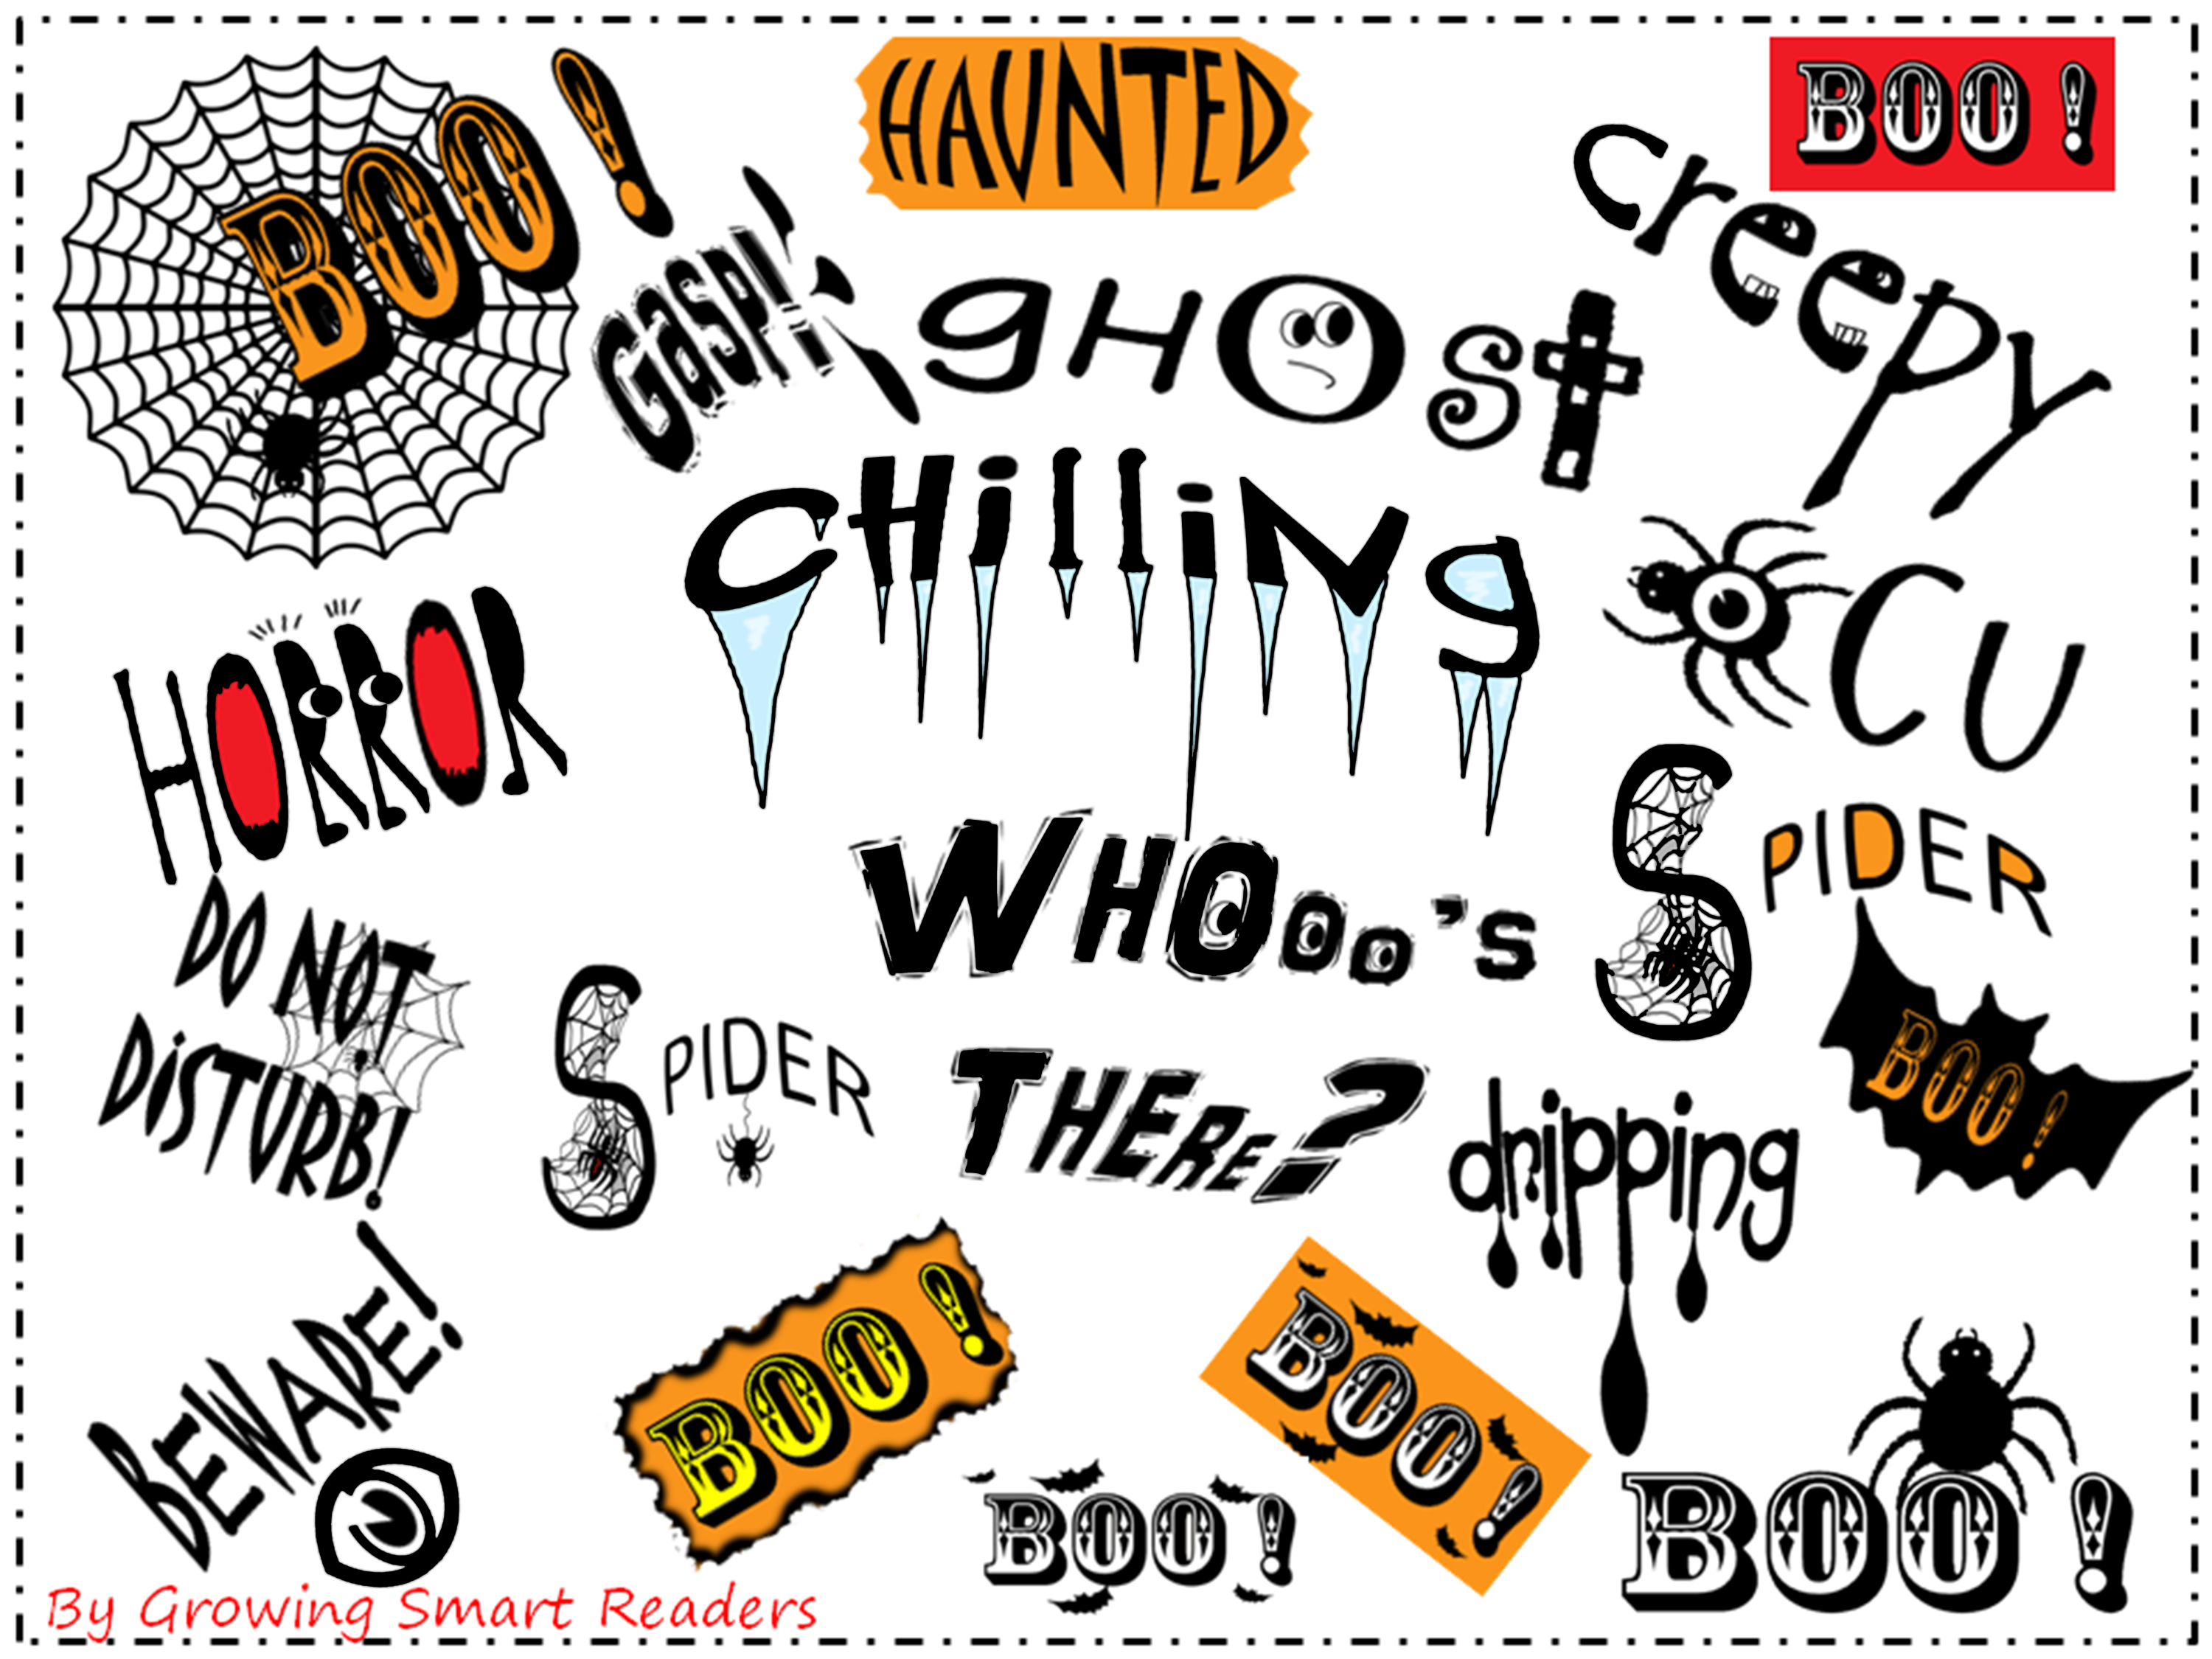 Halloween Spooky Word Art For Teachers And Students